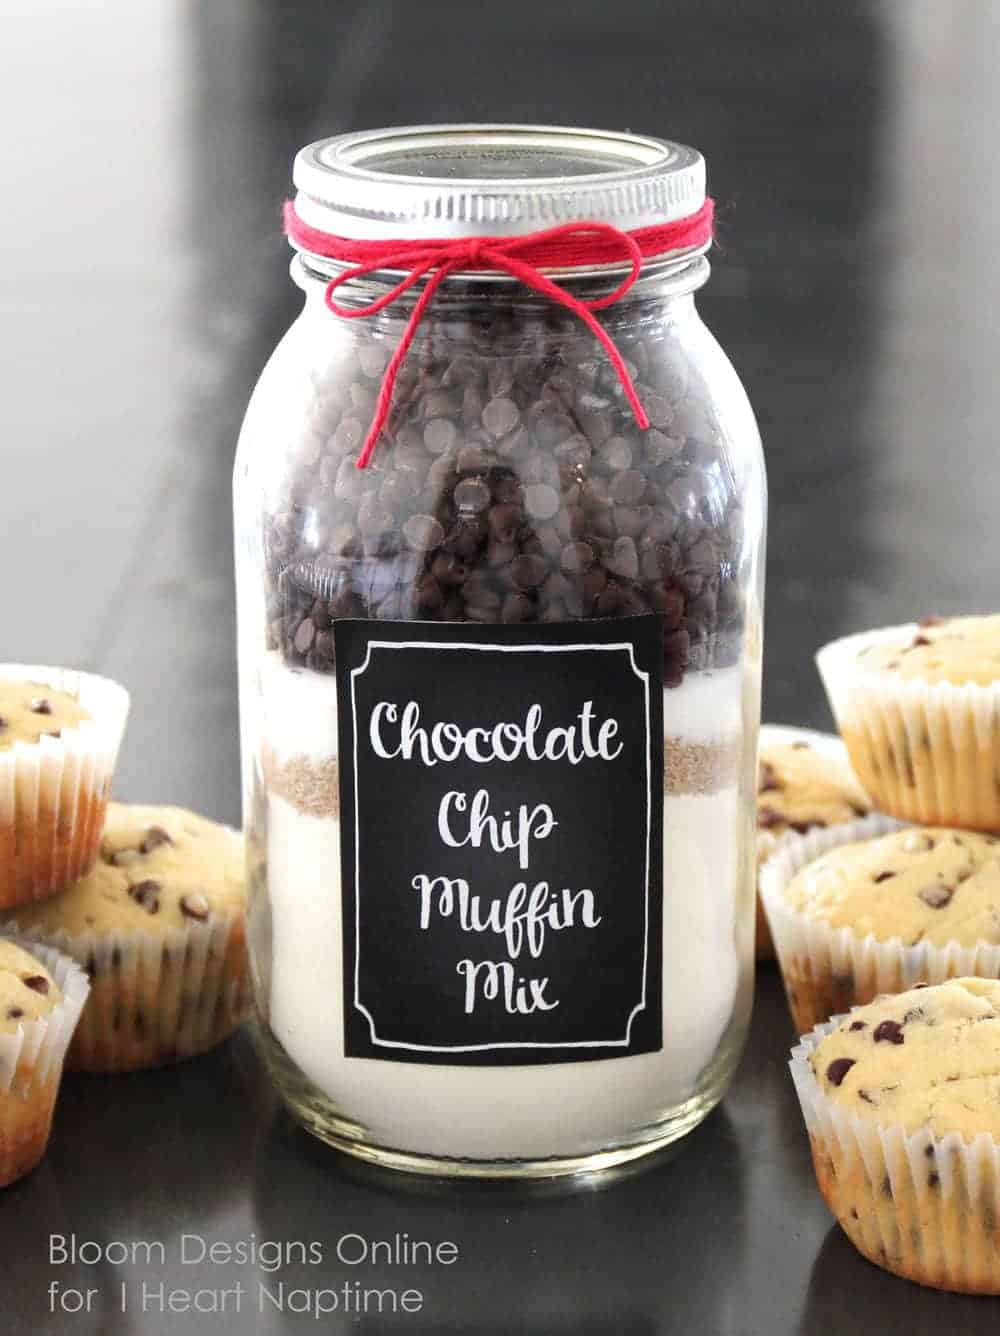 A close up of chocolate chip muffin mix in a mason jar